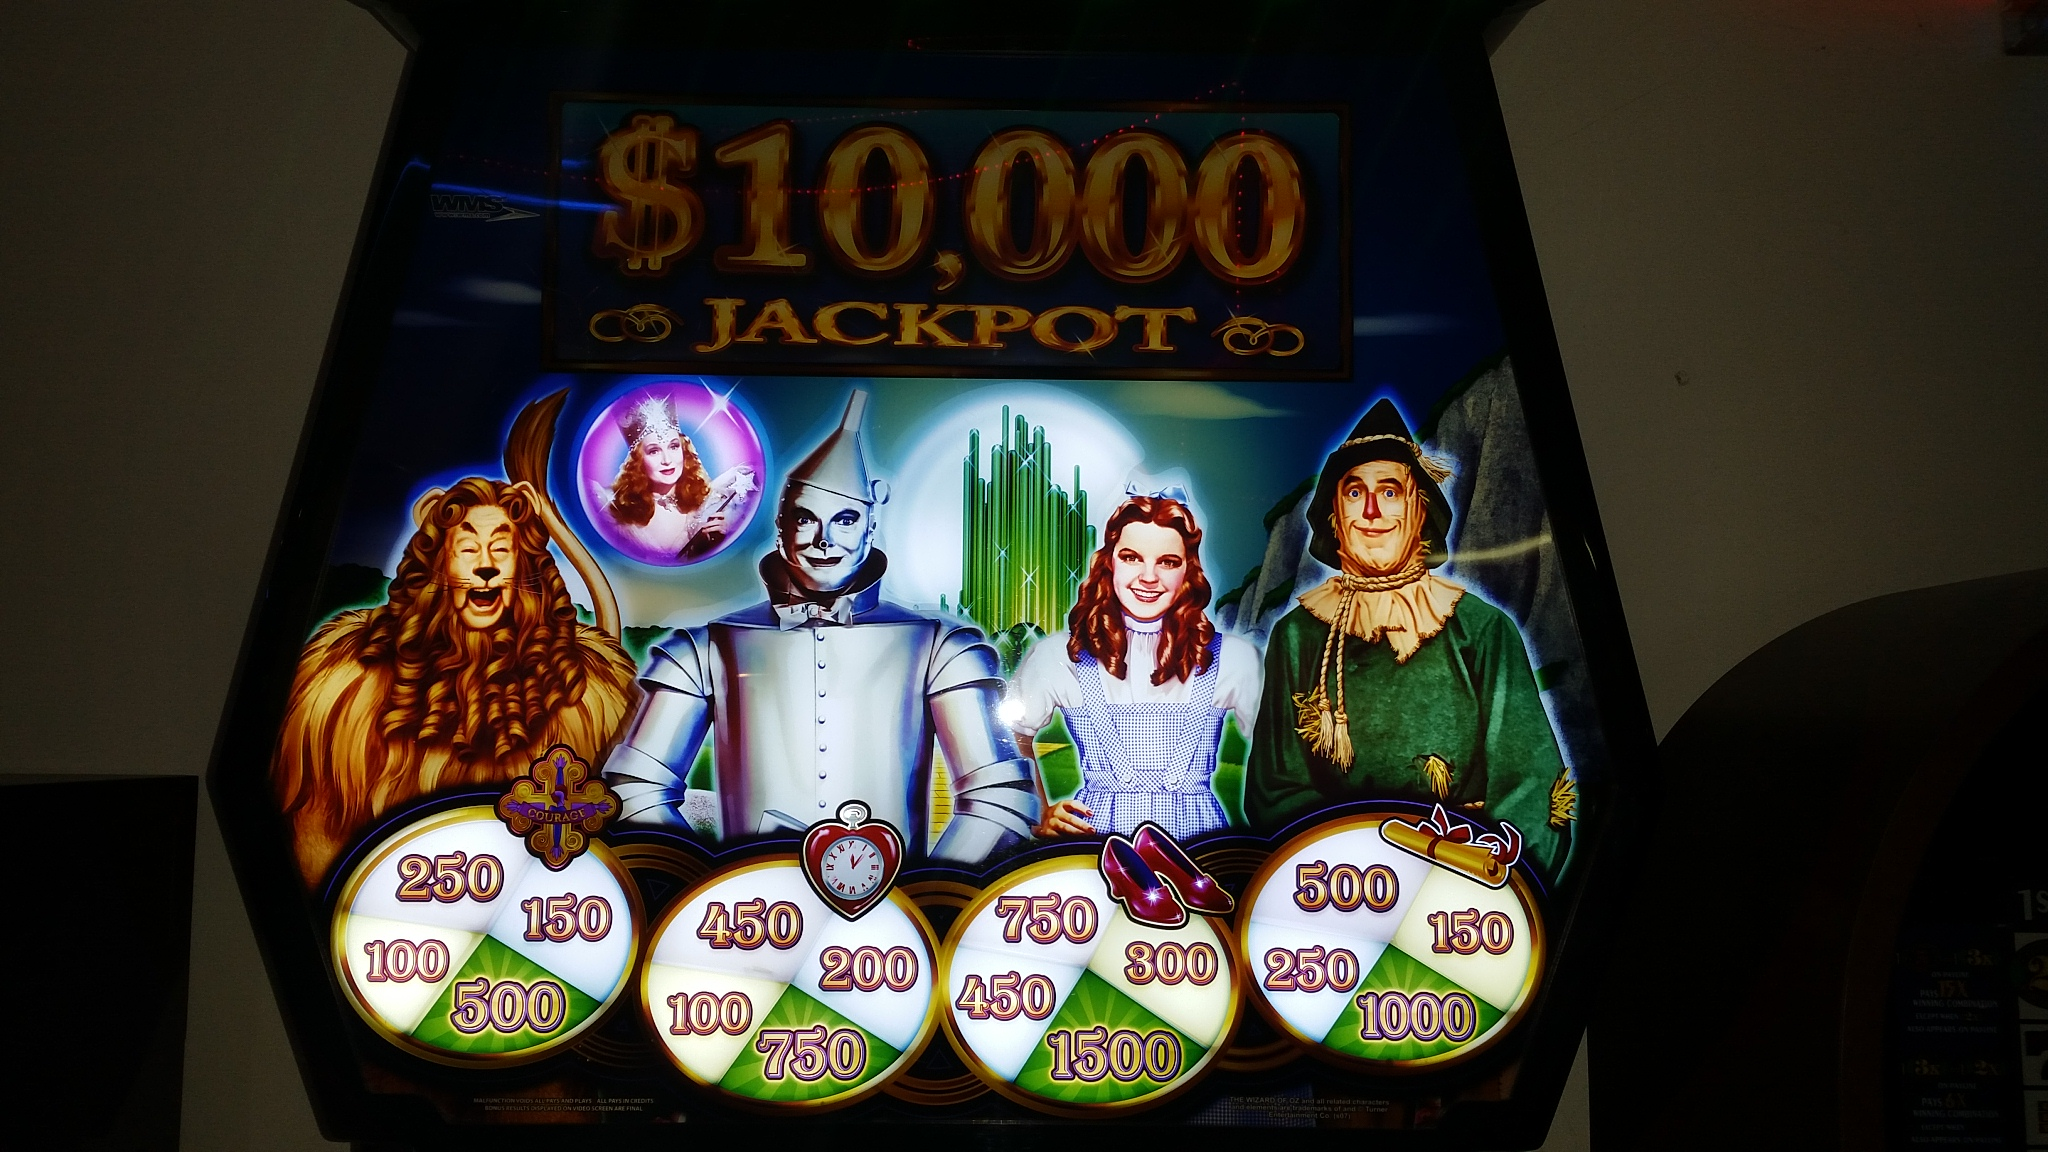 wizard of oz casino slot machine for sale